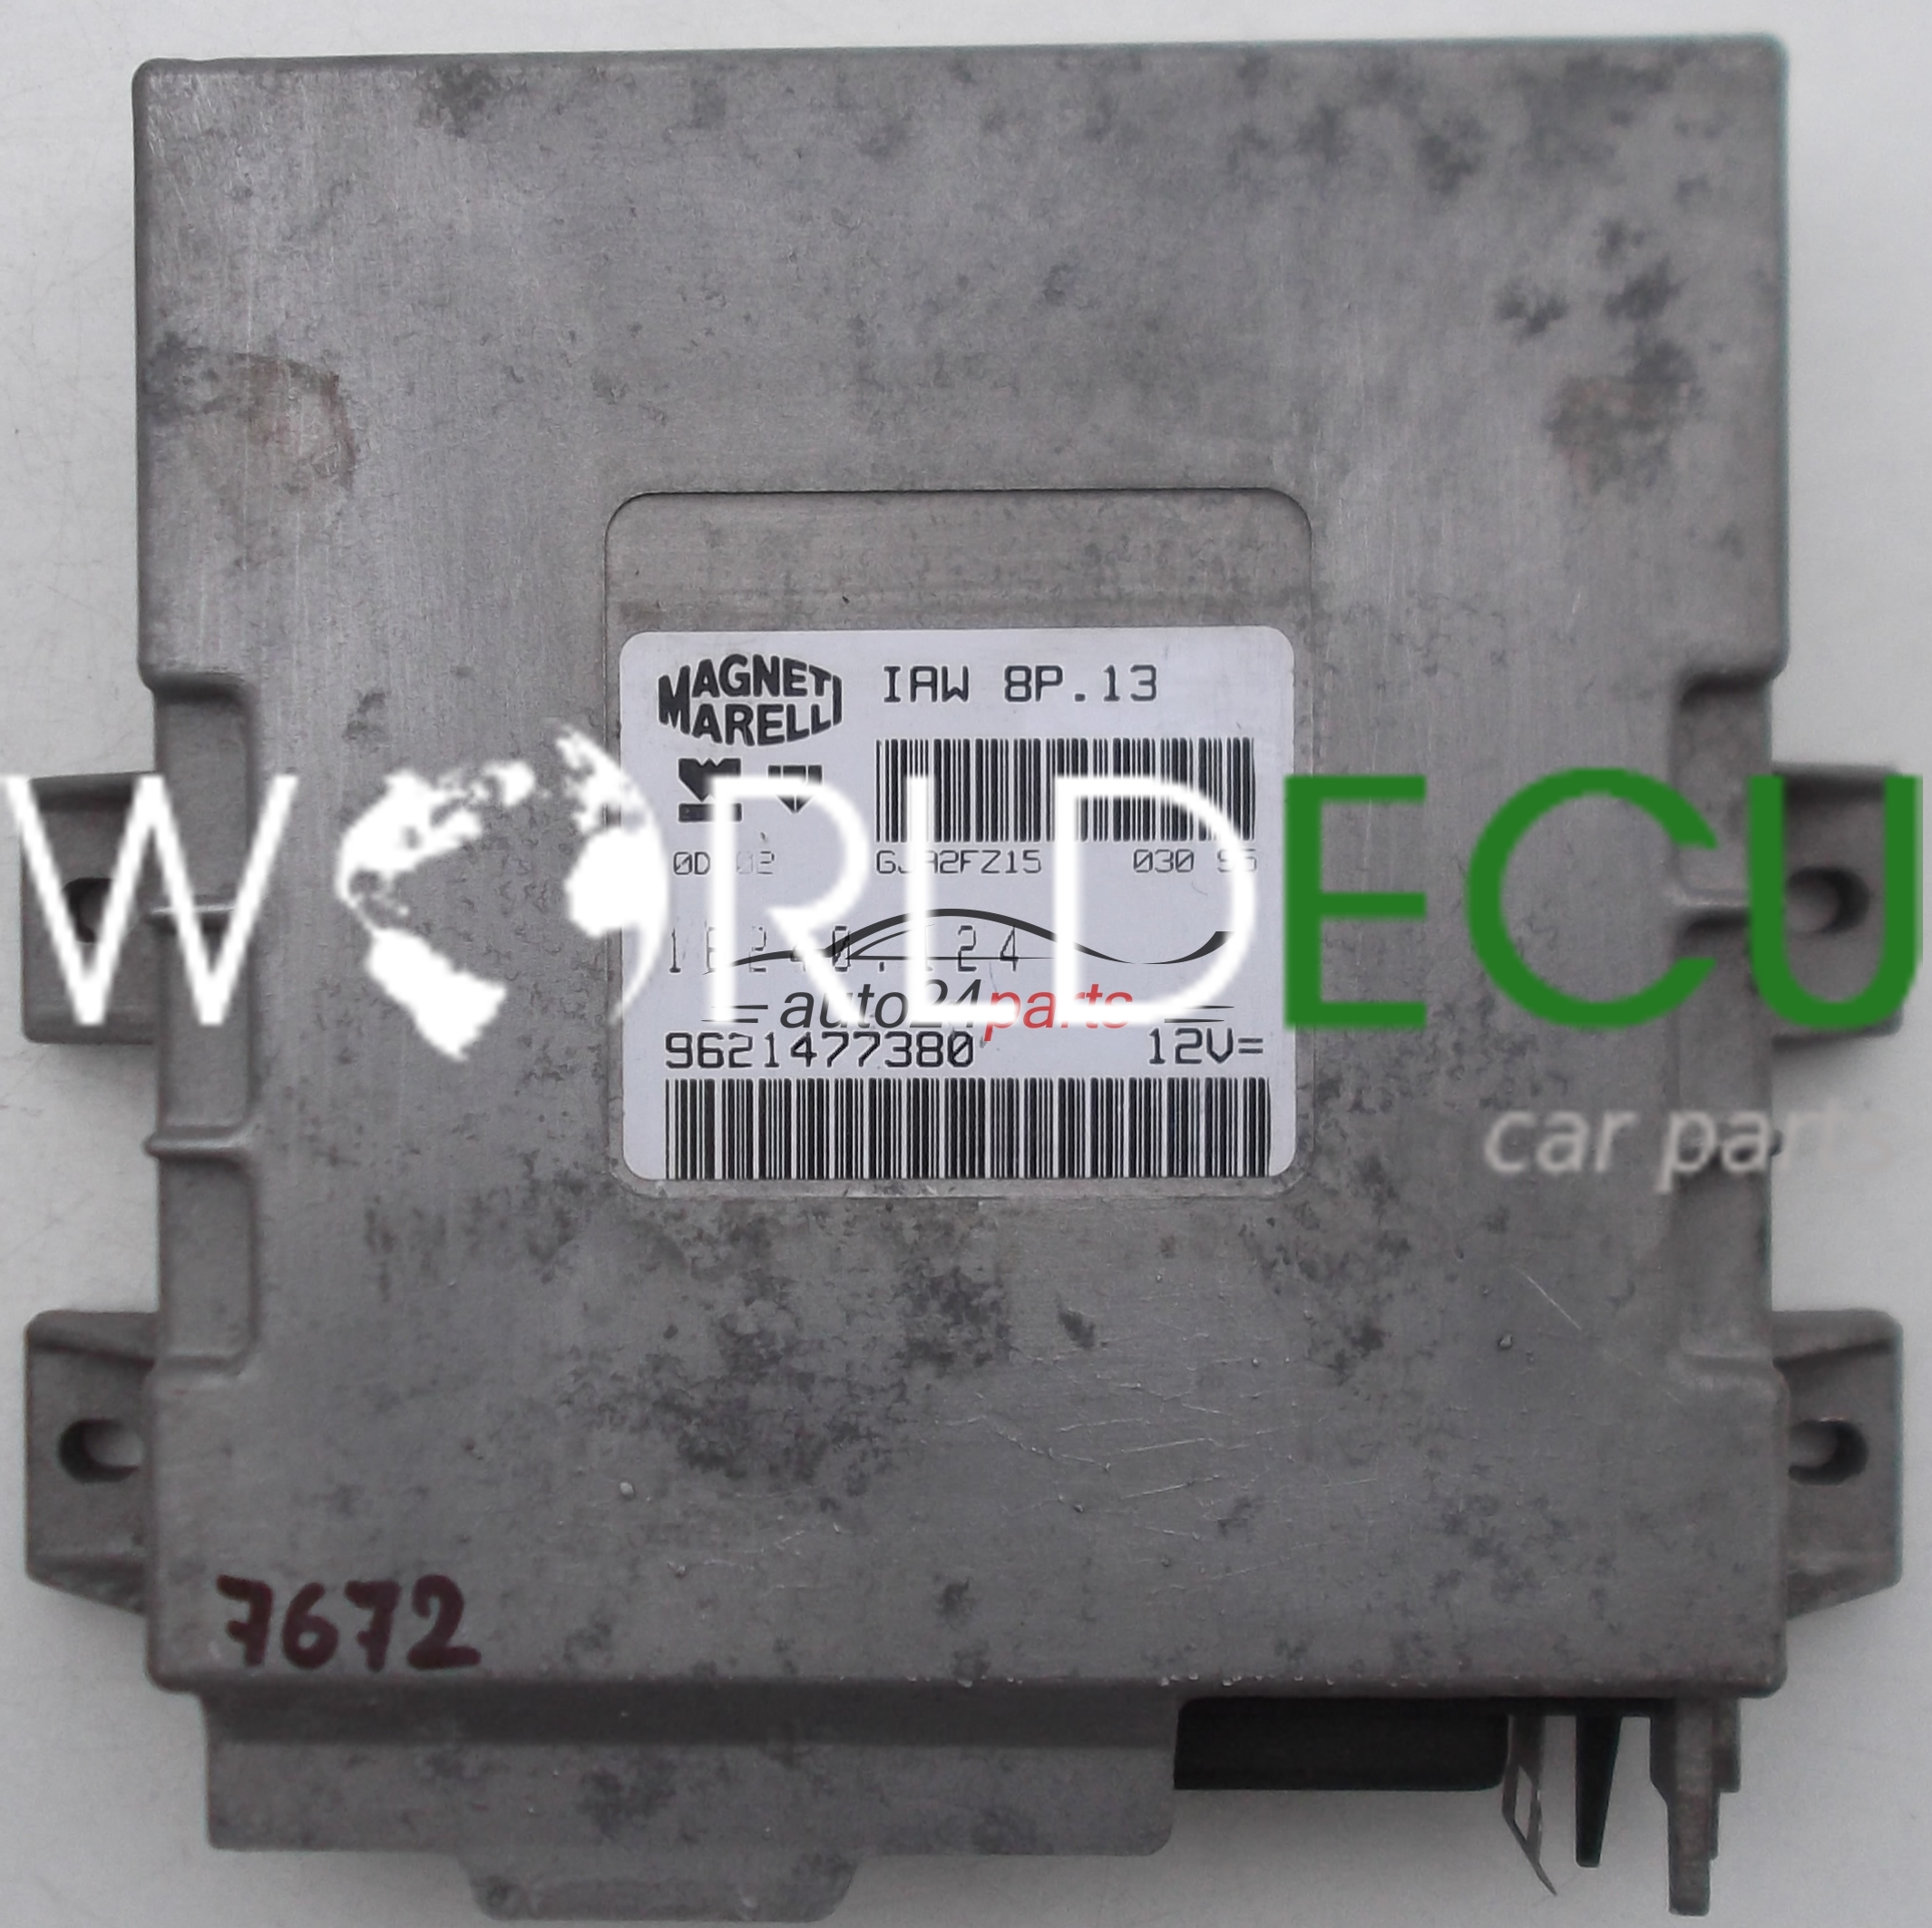 Peugeot 405 Fuse Box Pdf Wiring Diagram Will Be A Thing In 306 Ecu Engine Controller Citroen Zx 1 6 Iaw 8p 13 Rh Worldecu Com 408 206